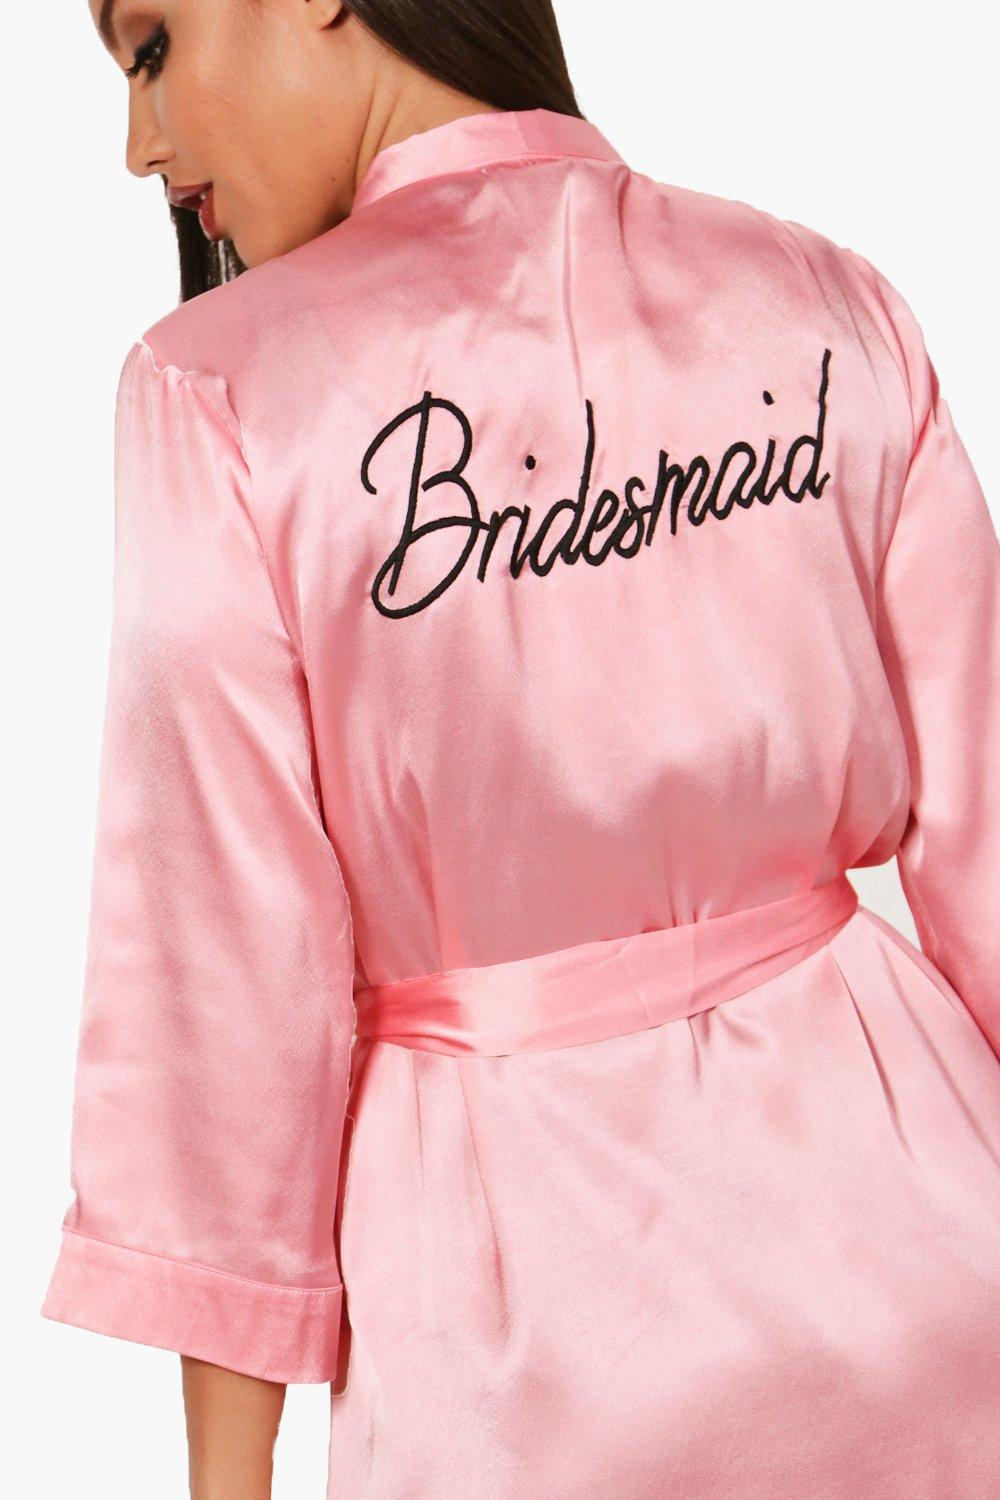 blush Satin 'Bridesmaid' blush Robe Satin 'Bridesmaid' Robe 'Bridesmaid' Robe Satin tO0xwtWzq5